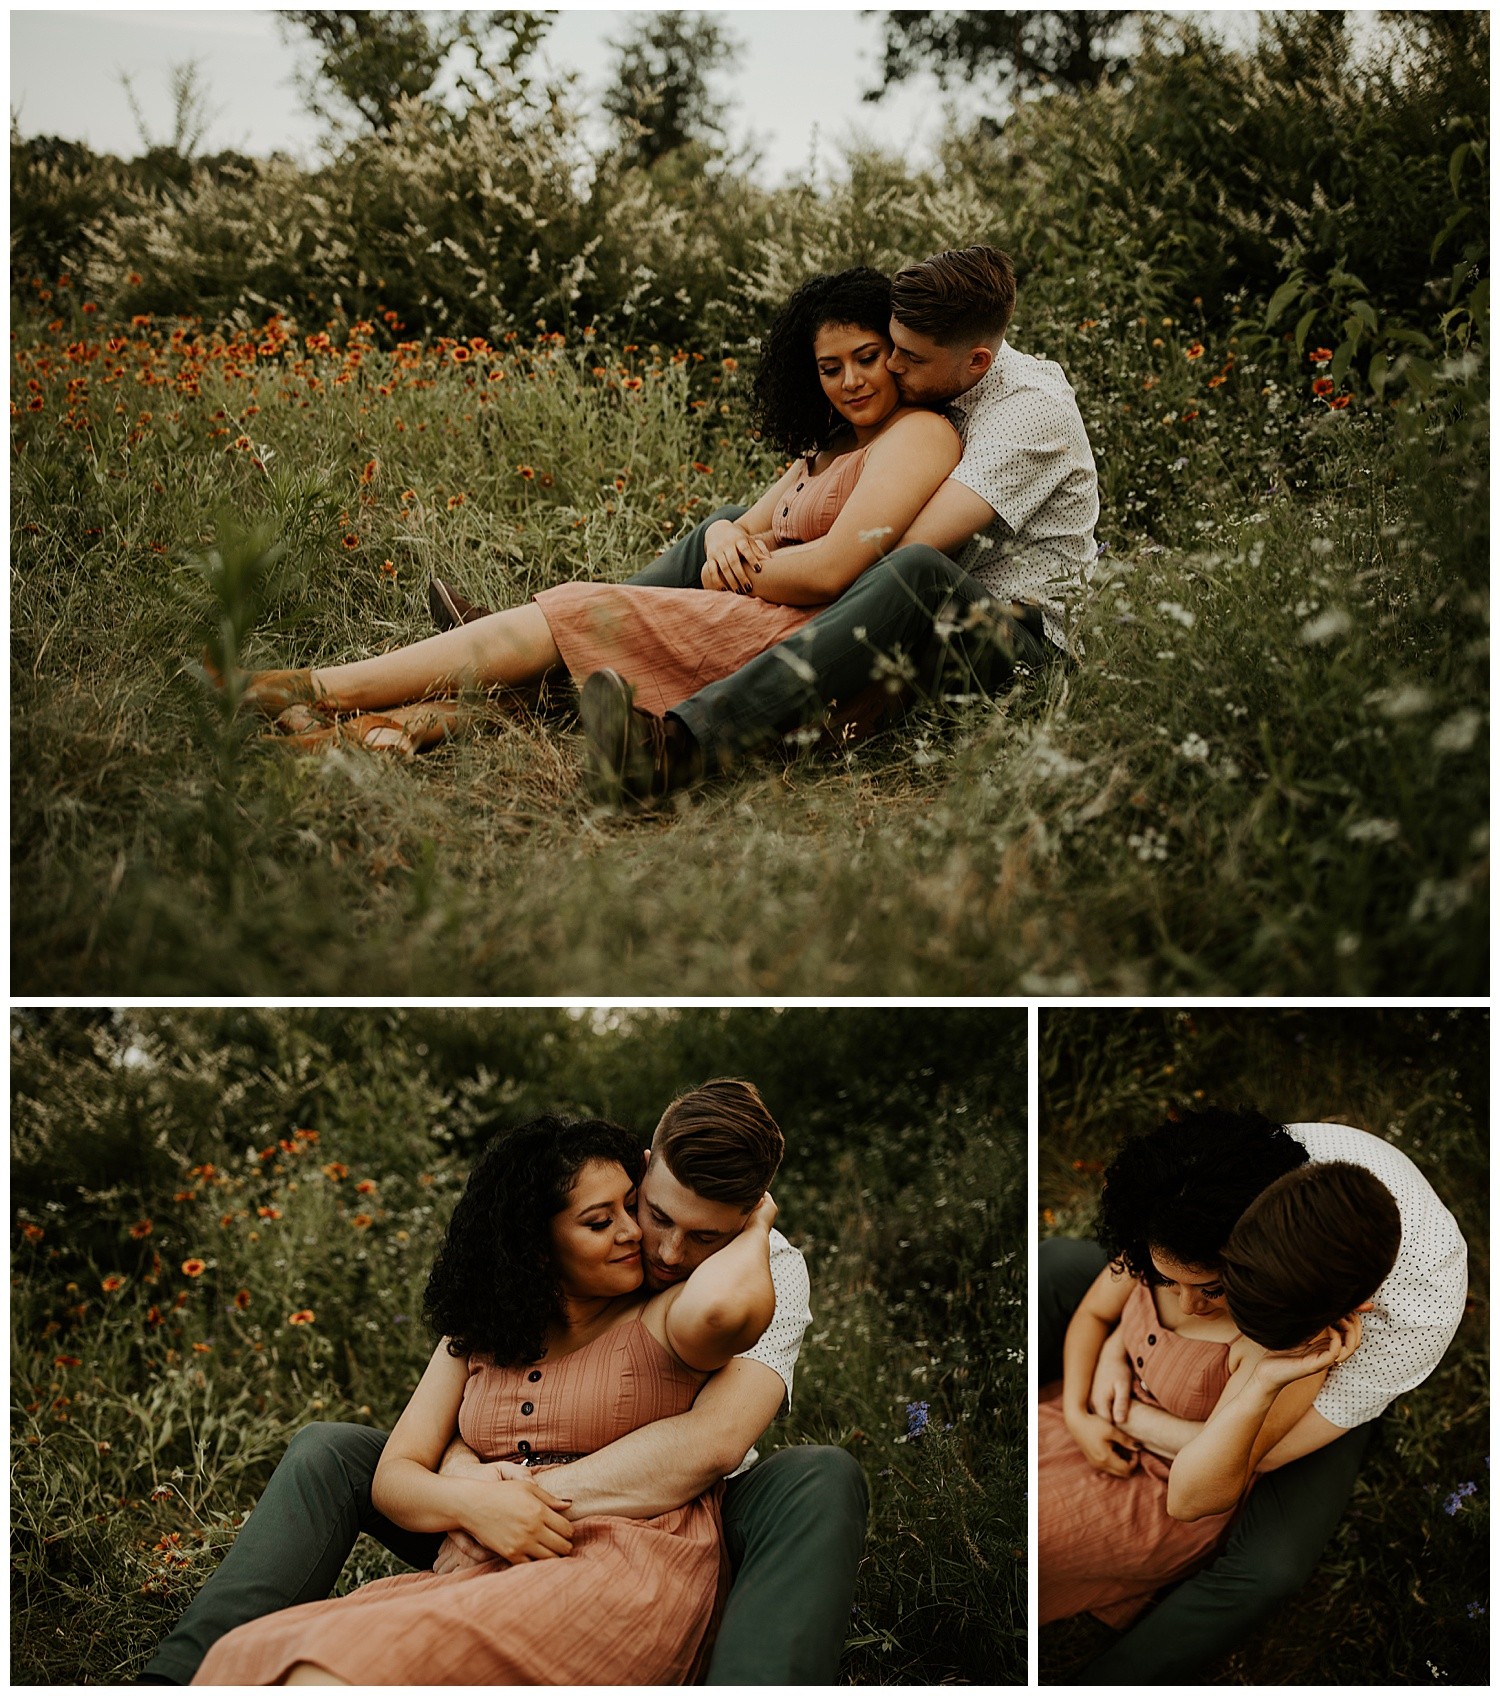 Laken-Mackenzie-Photography-Southside-Fort-Worth-Engagement-Session-Roselyn-Ryan-Engagement-Session08.jpg